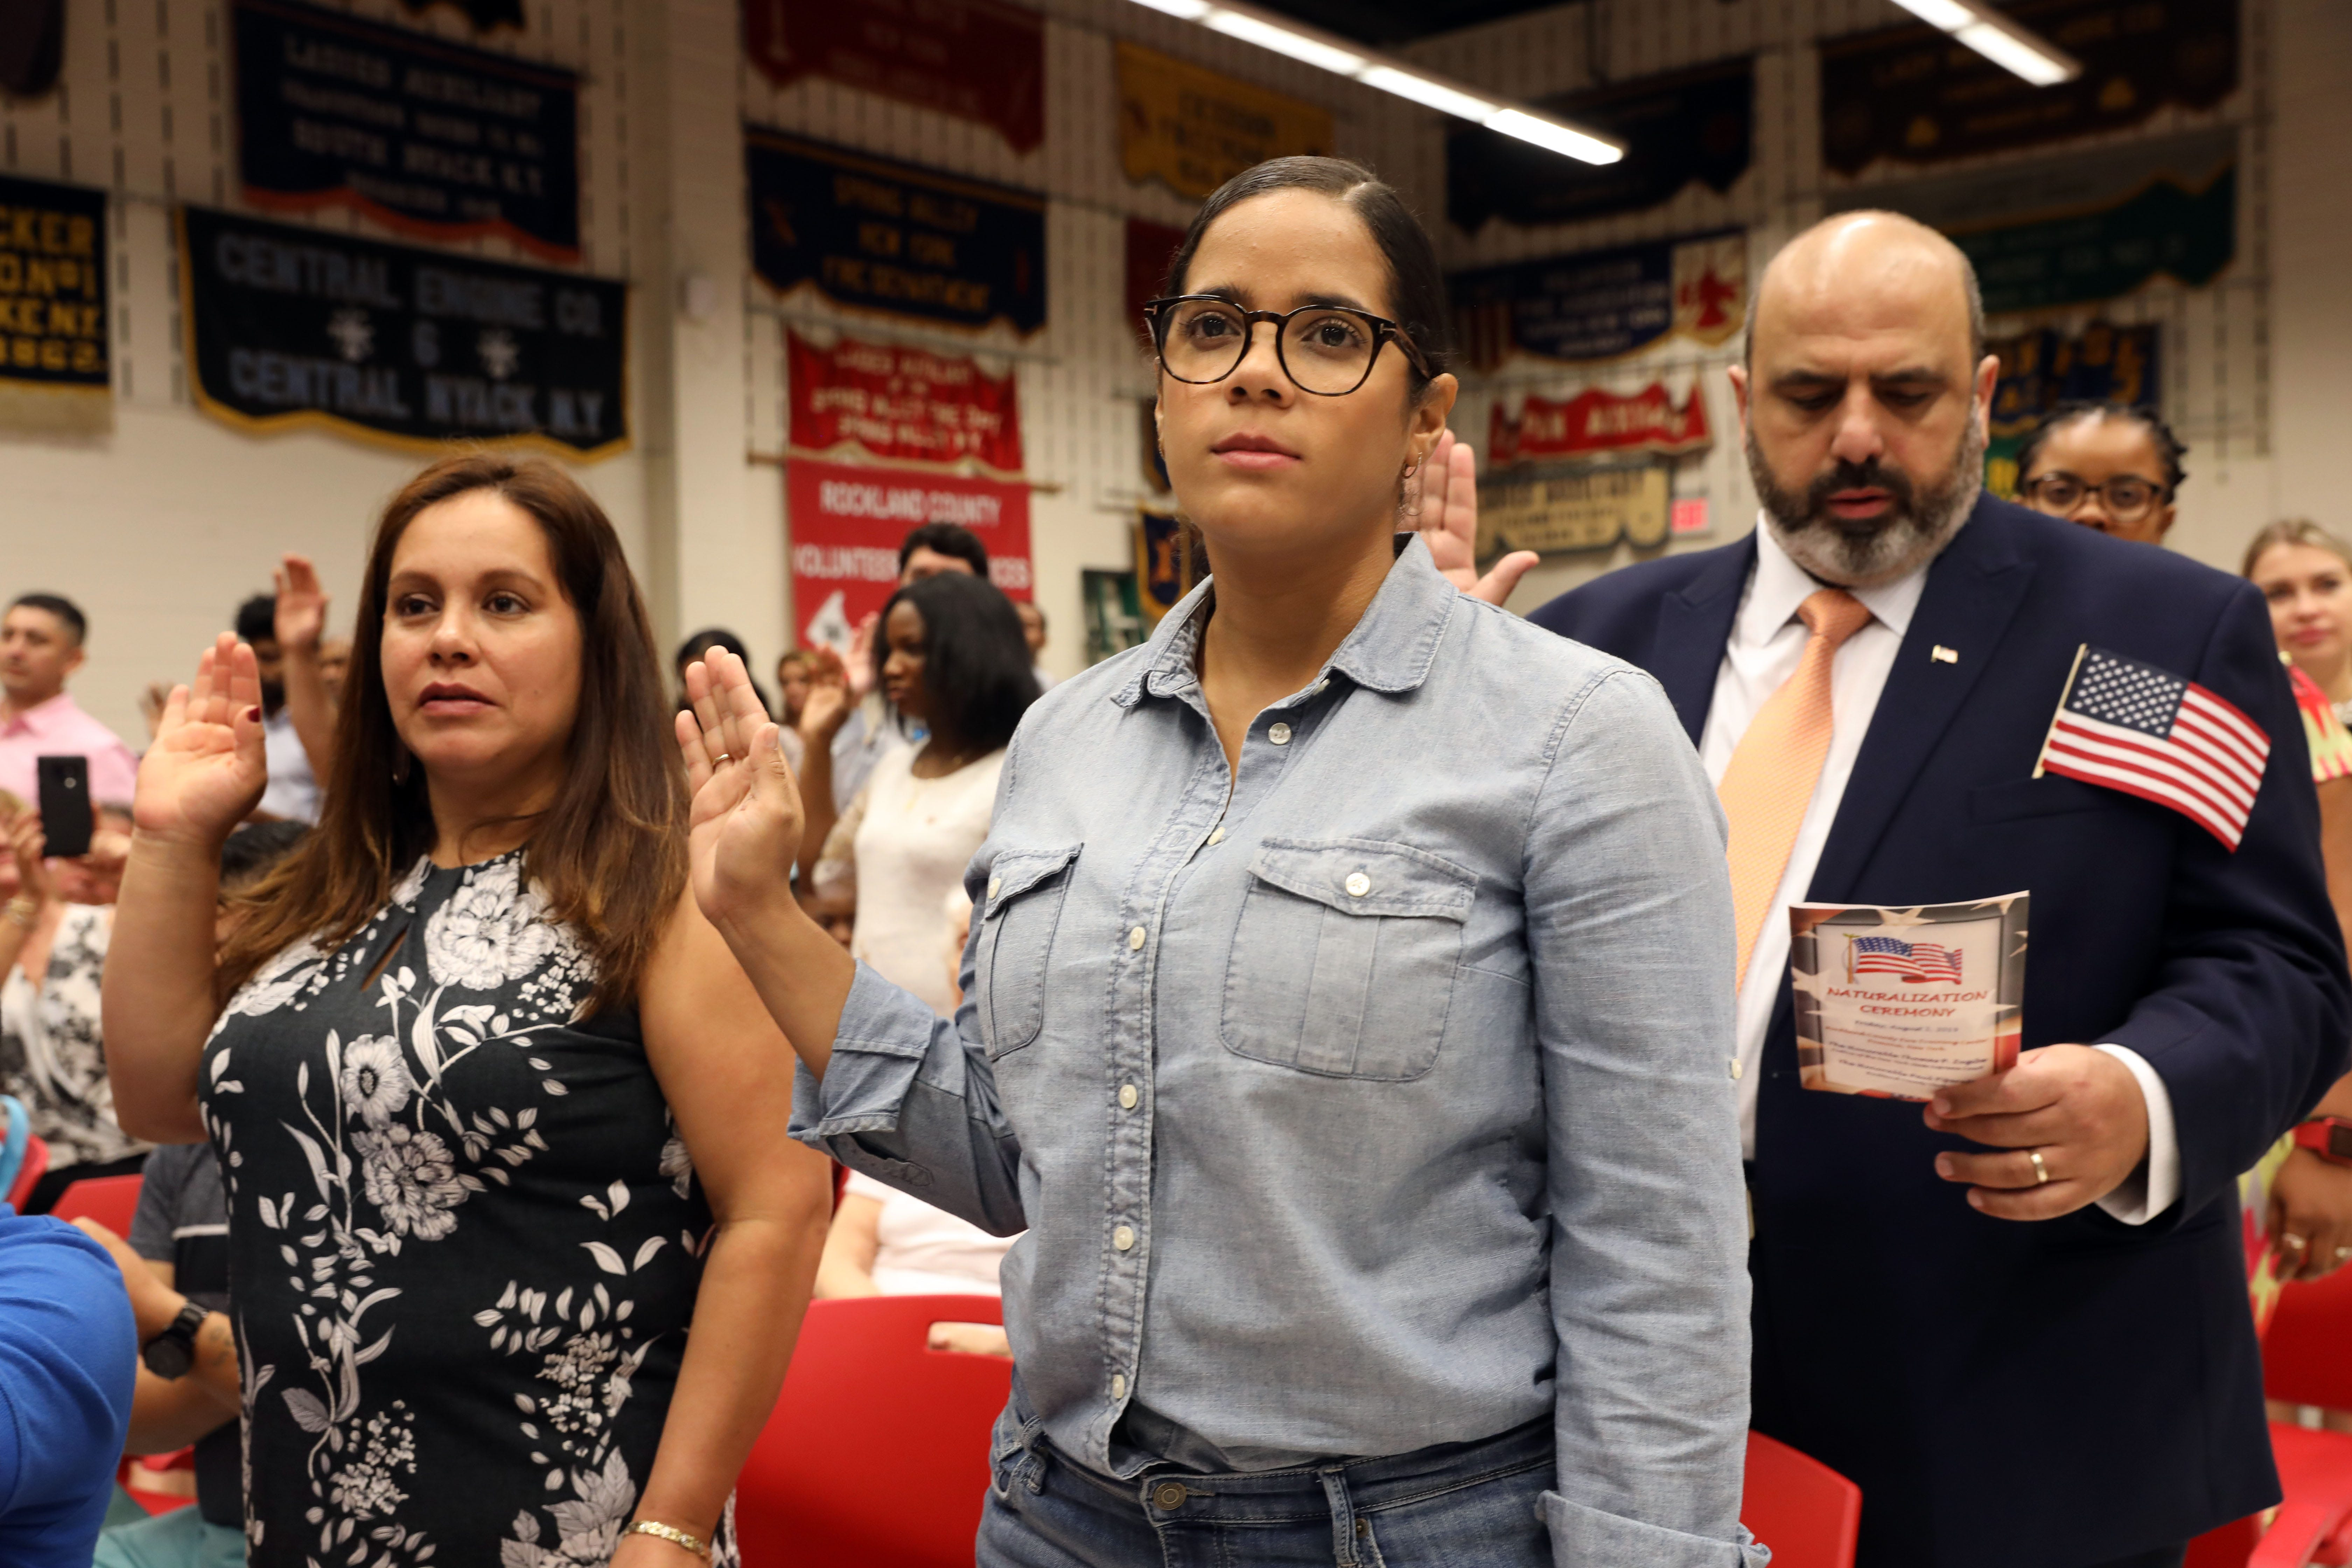 Rockland welcomes new citizens in naturalization ceremony